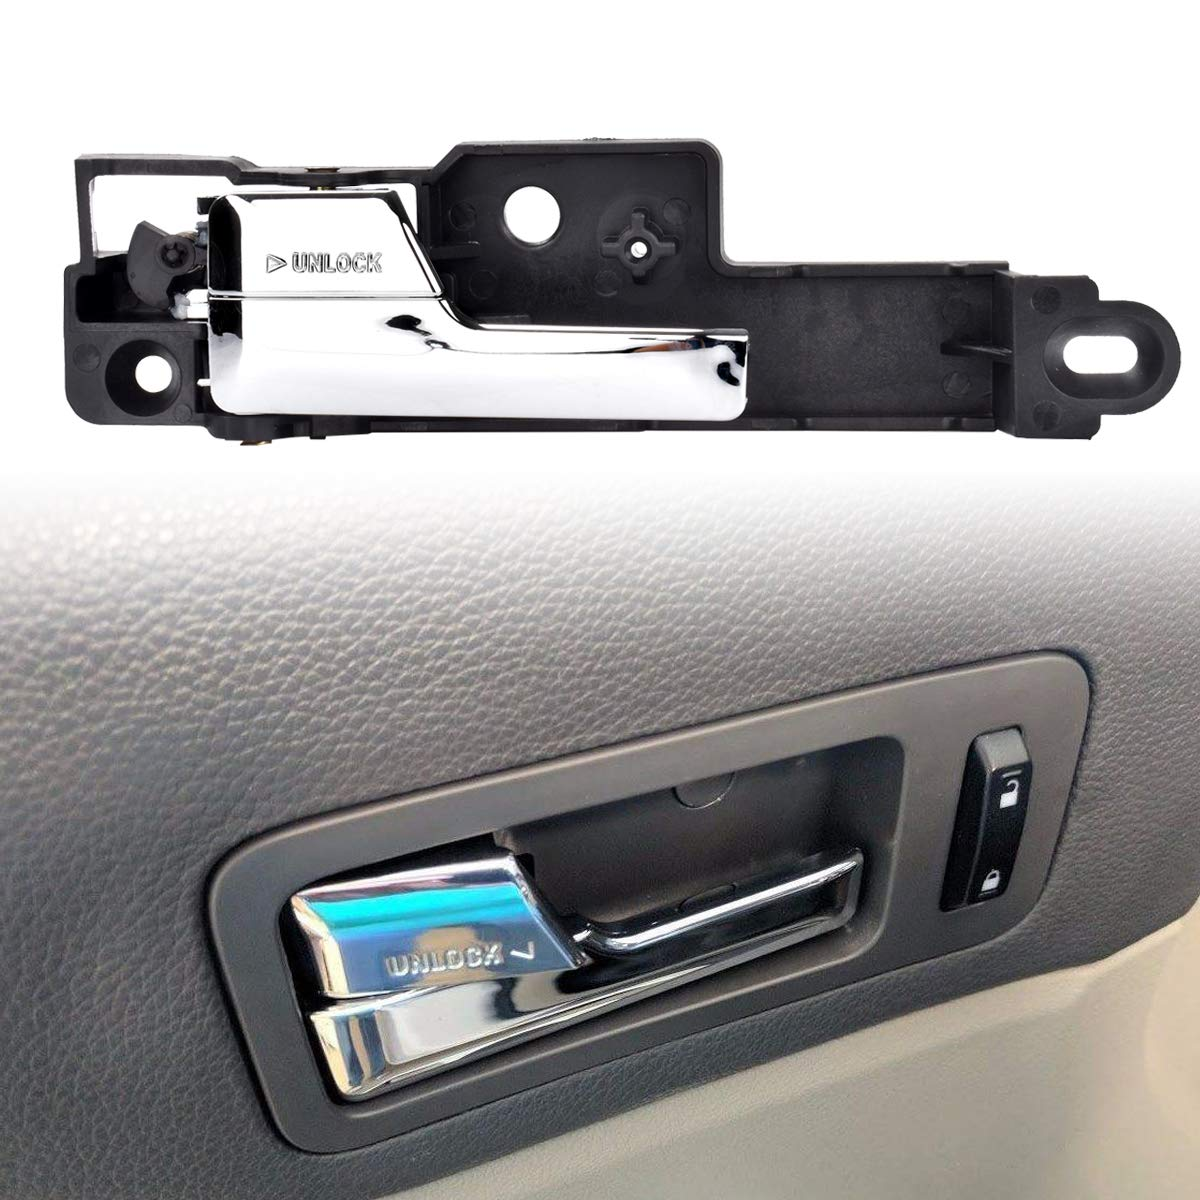 6E5Z5422600AA FAERSI Inside Interior Door Handle Front Driver /& Passenger Side for 2006 2007 2008 2009 2010 2011 2012 Ford Fusion 06-11 Mercury Milan 6E5Z5422601A 07-11 Lincoln MKZ /& 2006 Zephyr